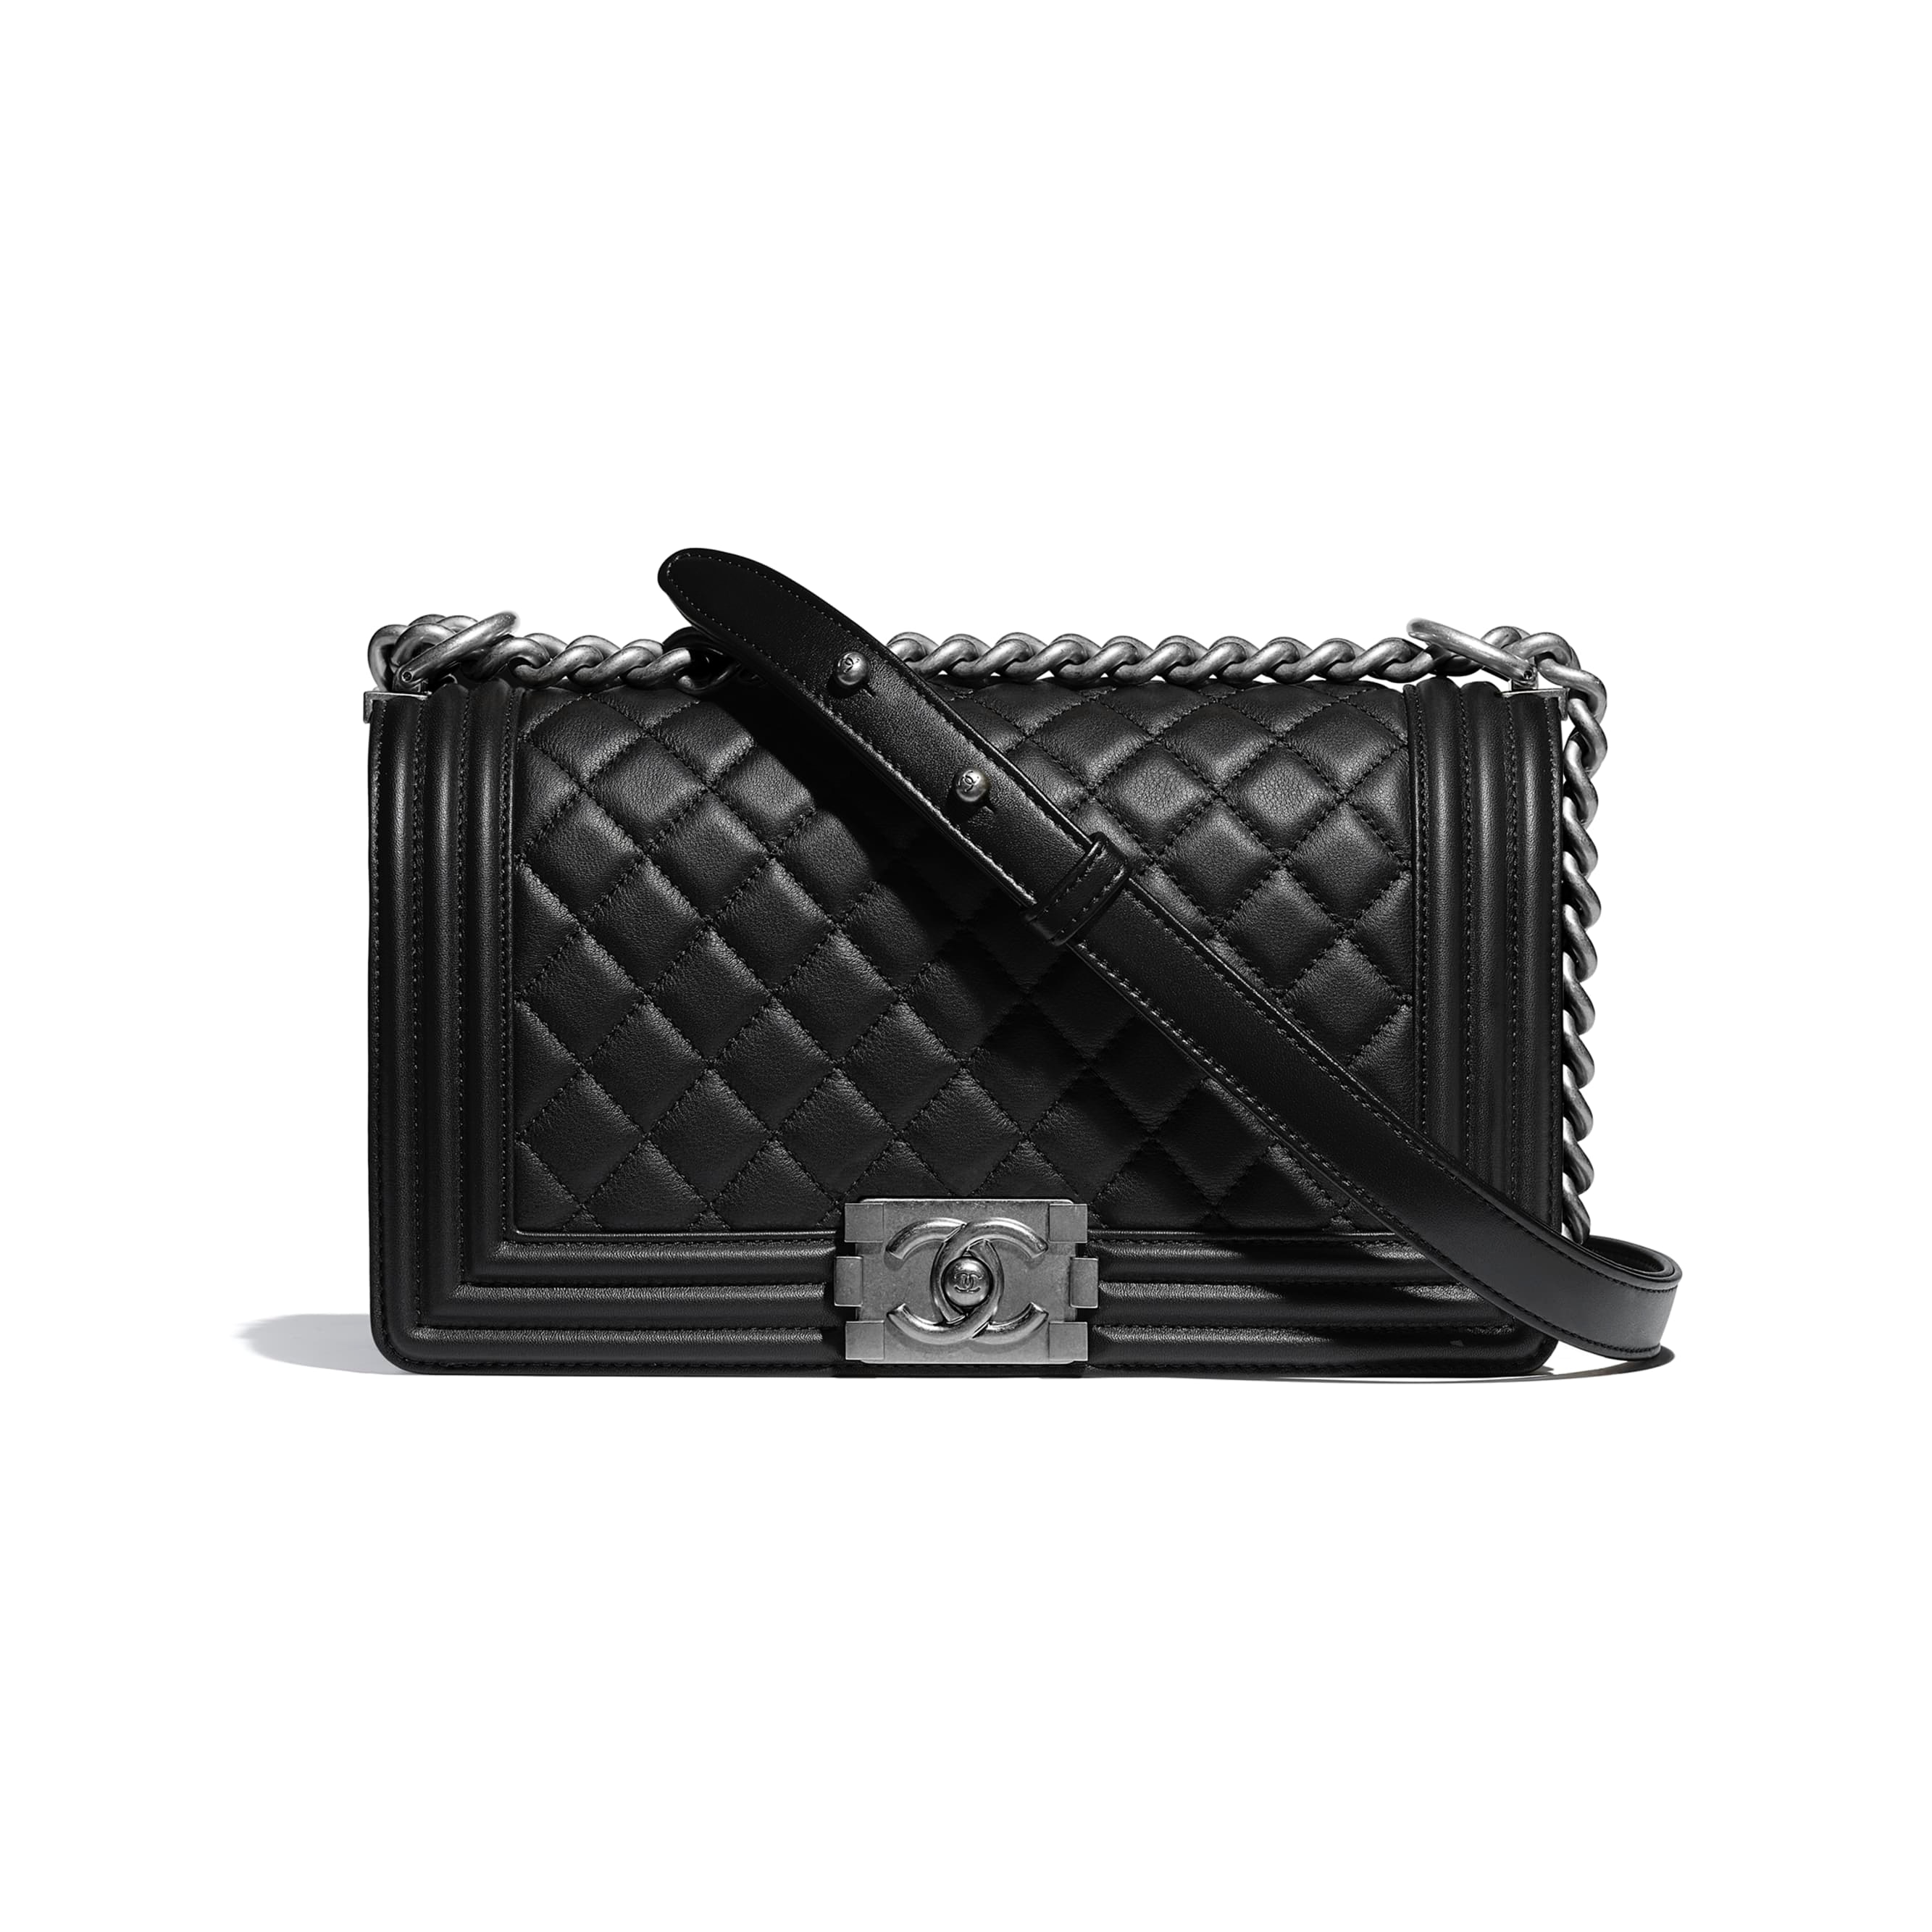 0ffa67100d9 Chanel's New Bag Trend For 2019 Is Here — And It's Extra